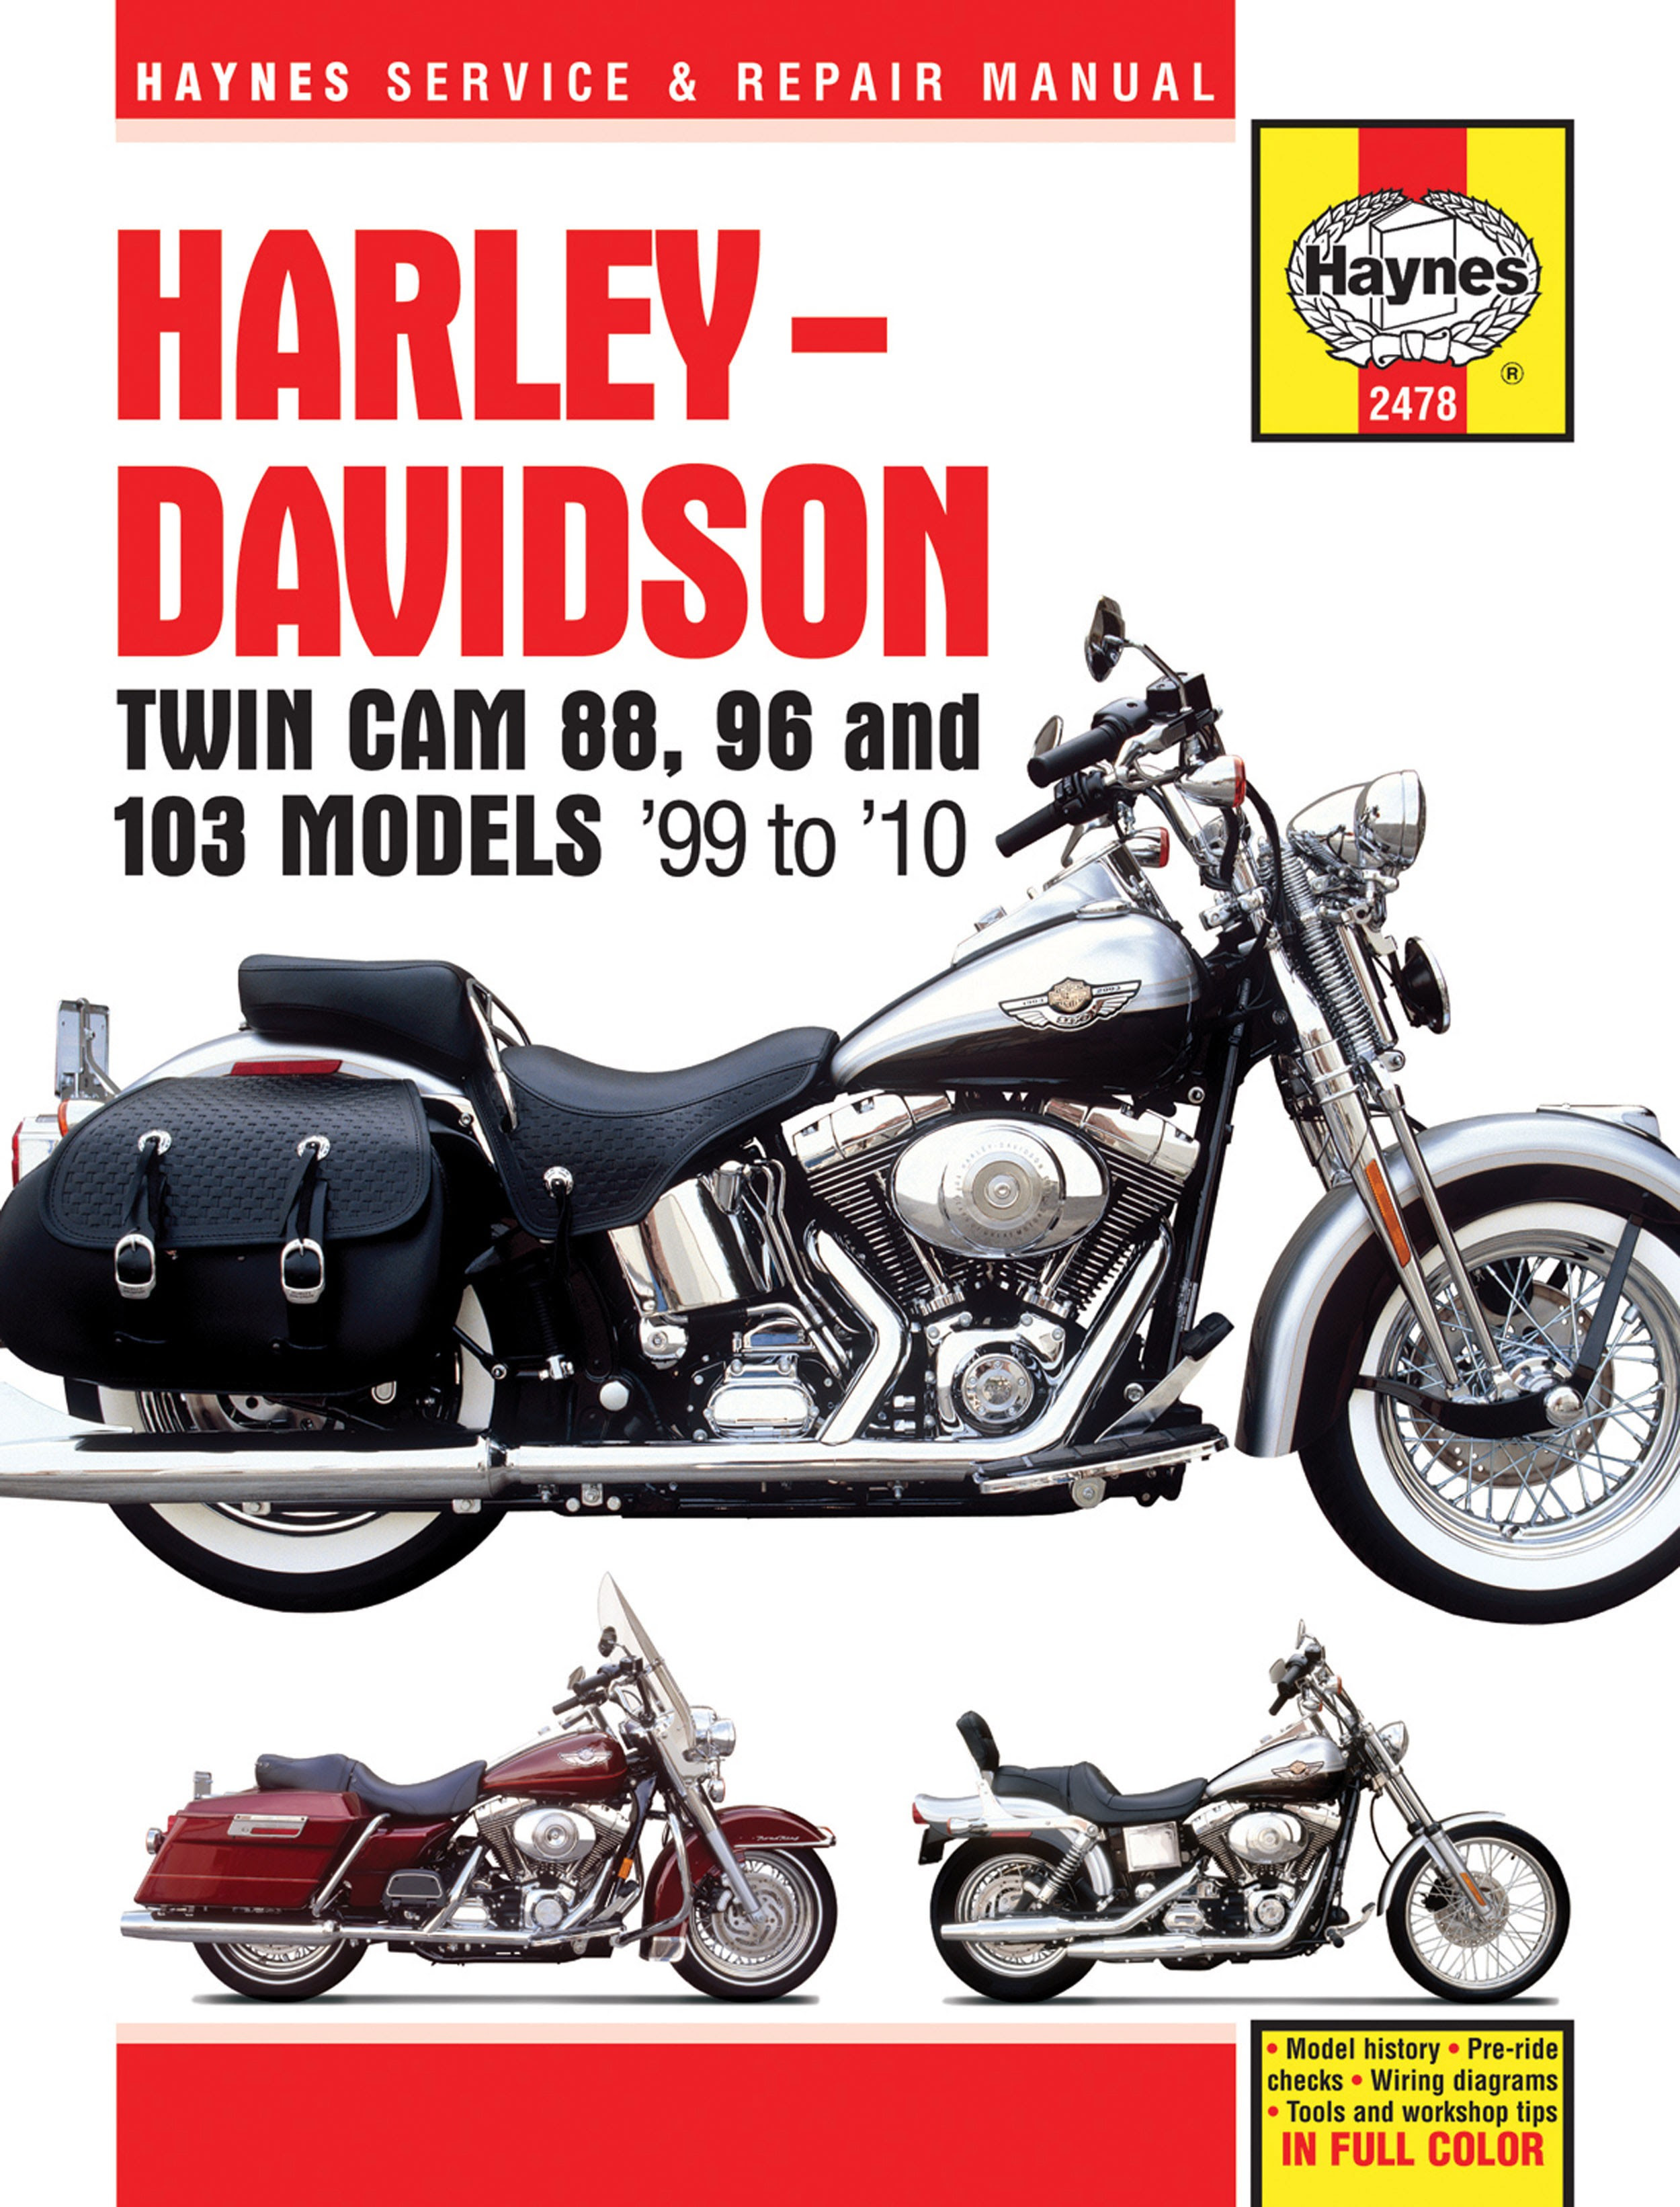 645c6 Harley Davidson Dyna Glide Wiring Diagram Wiring Resources